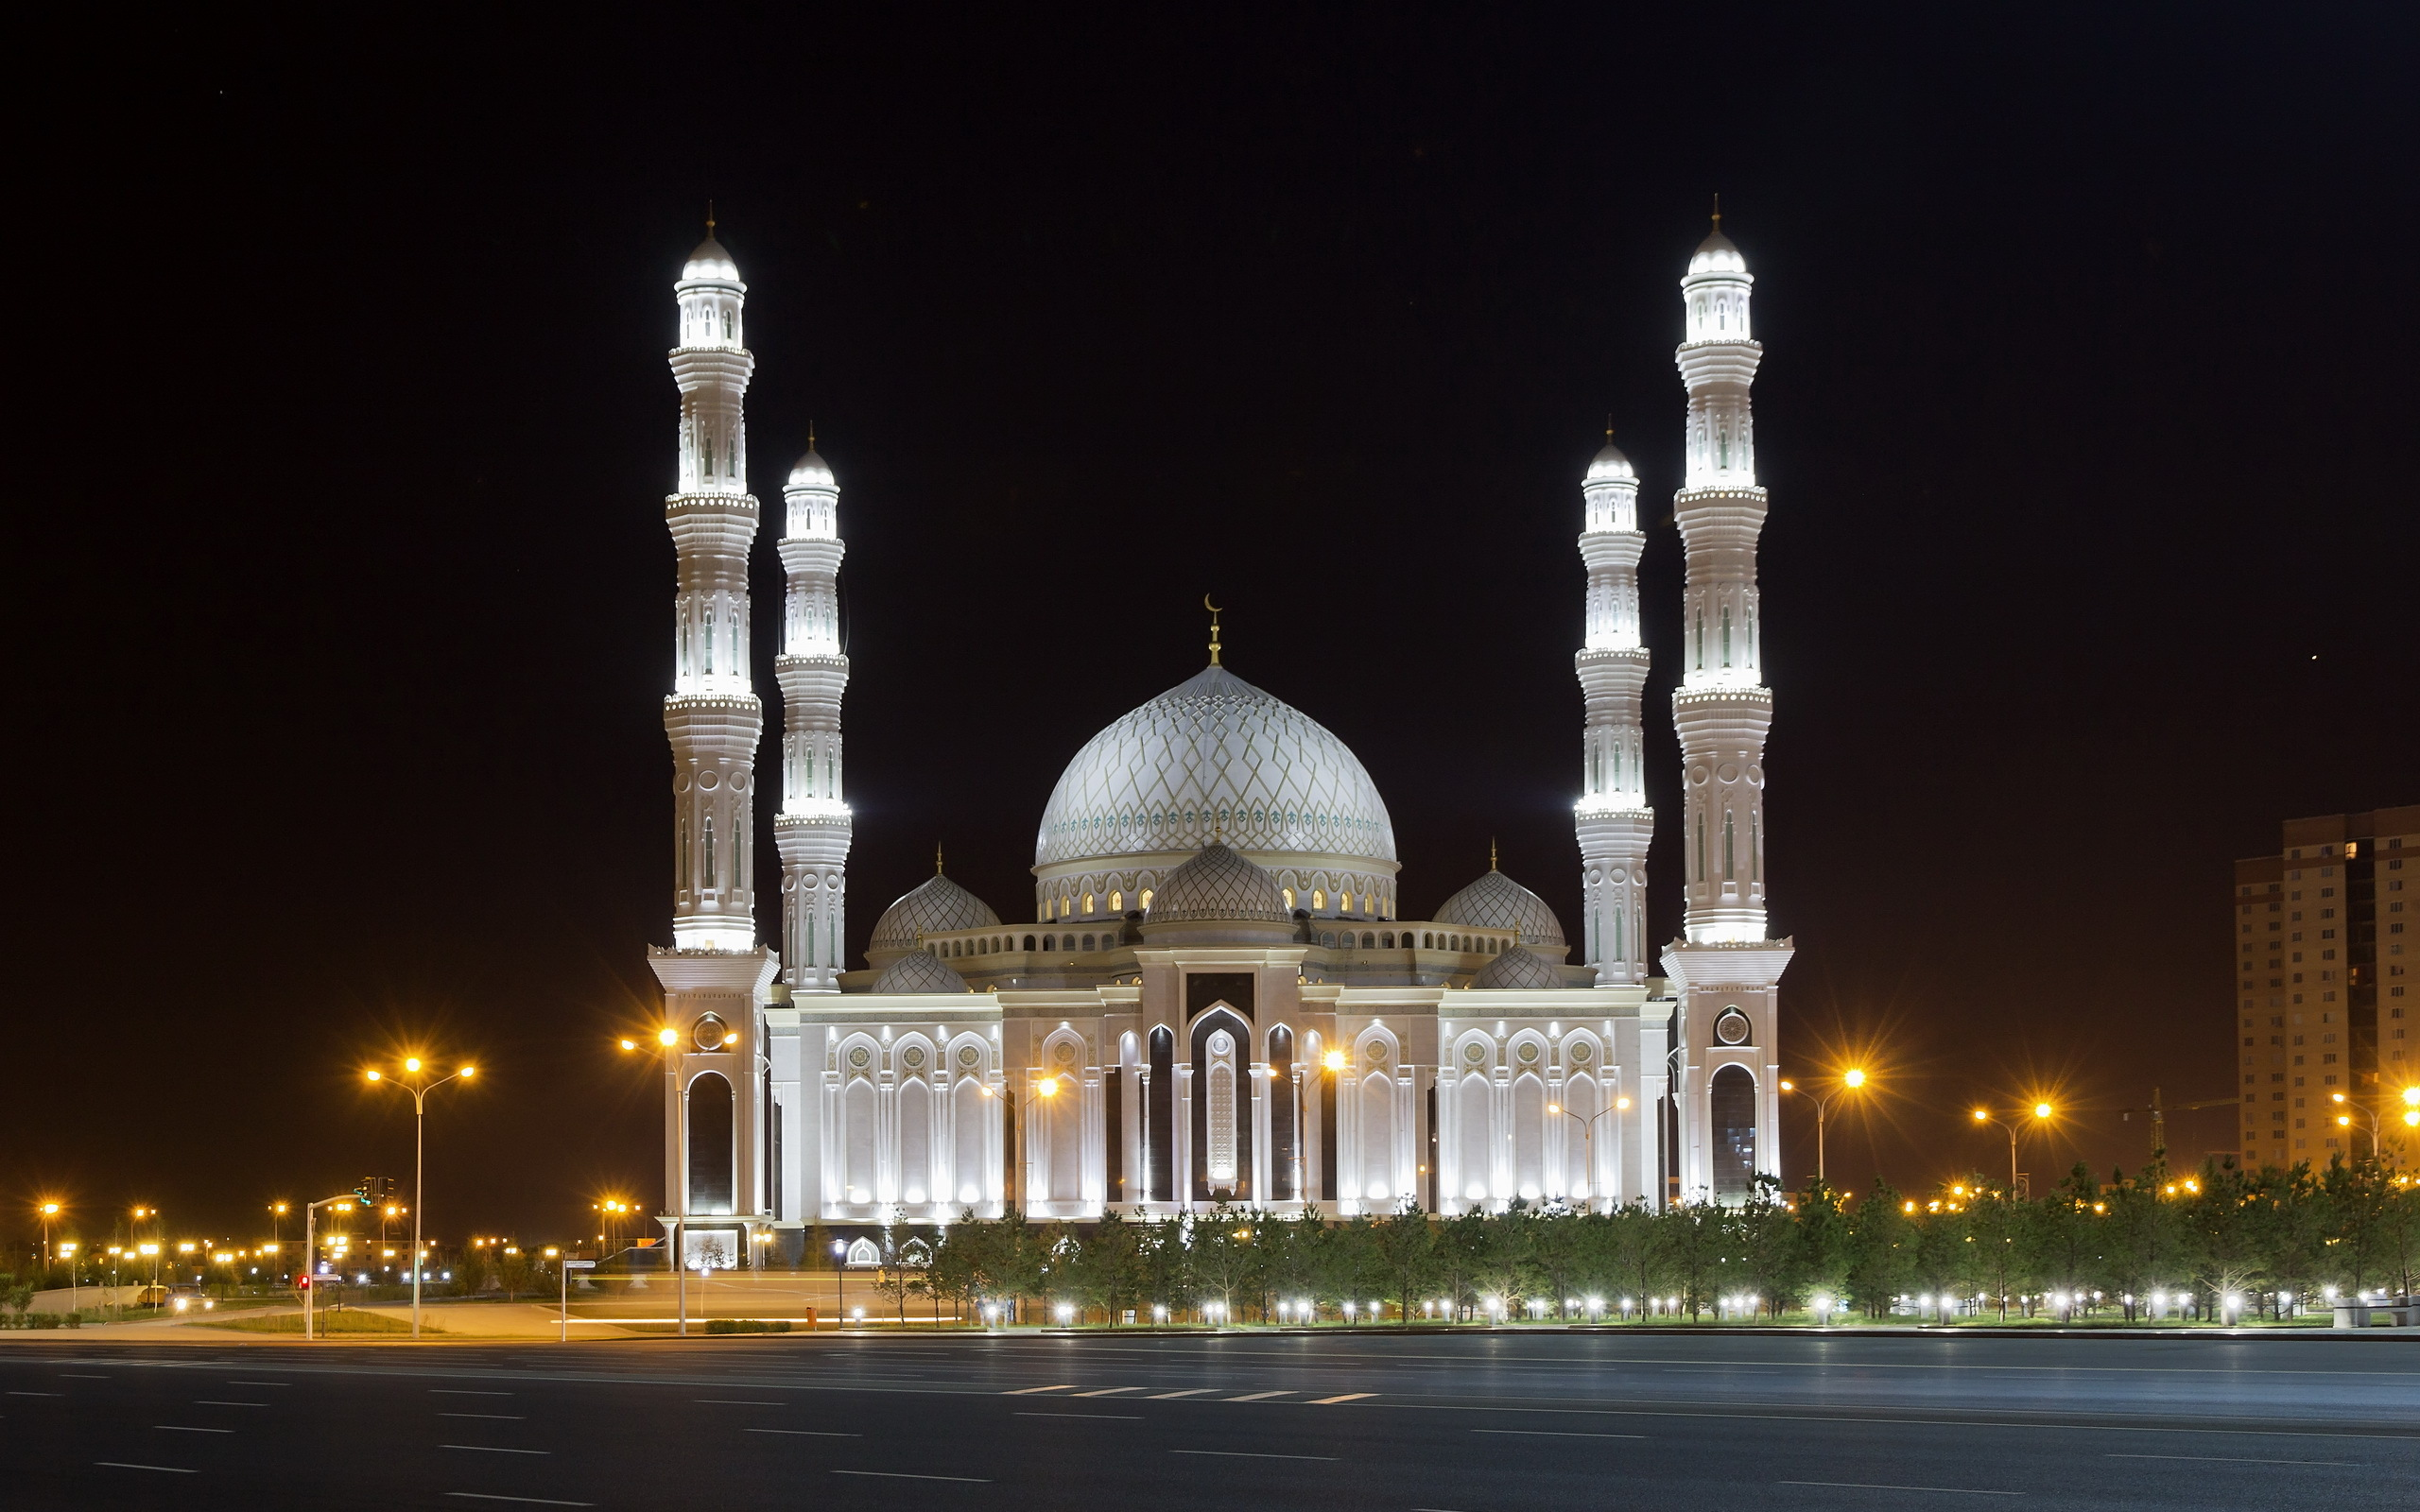 Awesome Great Mosque Architecture - Awesome Great Mosque Architecture